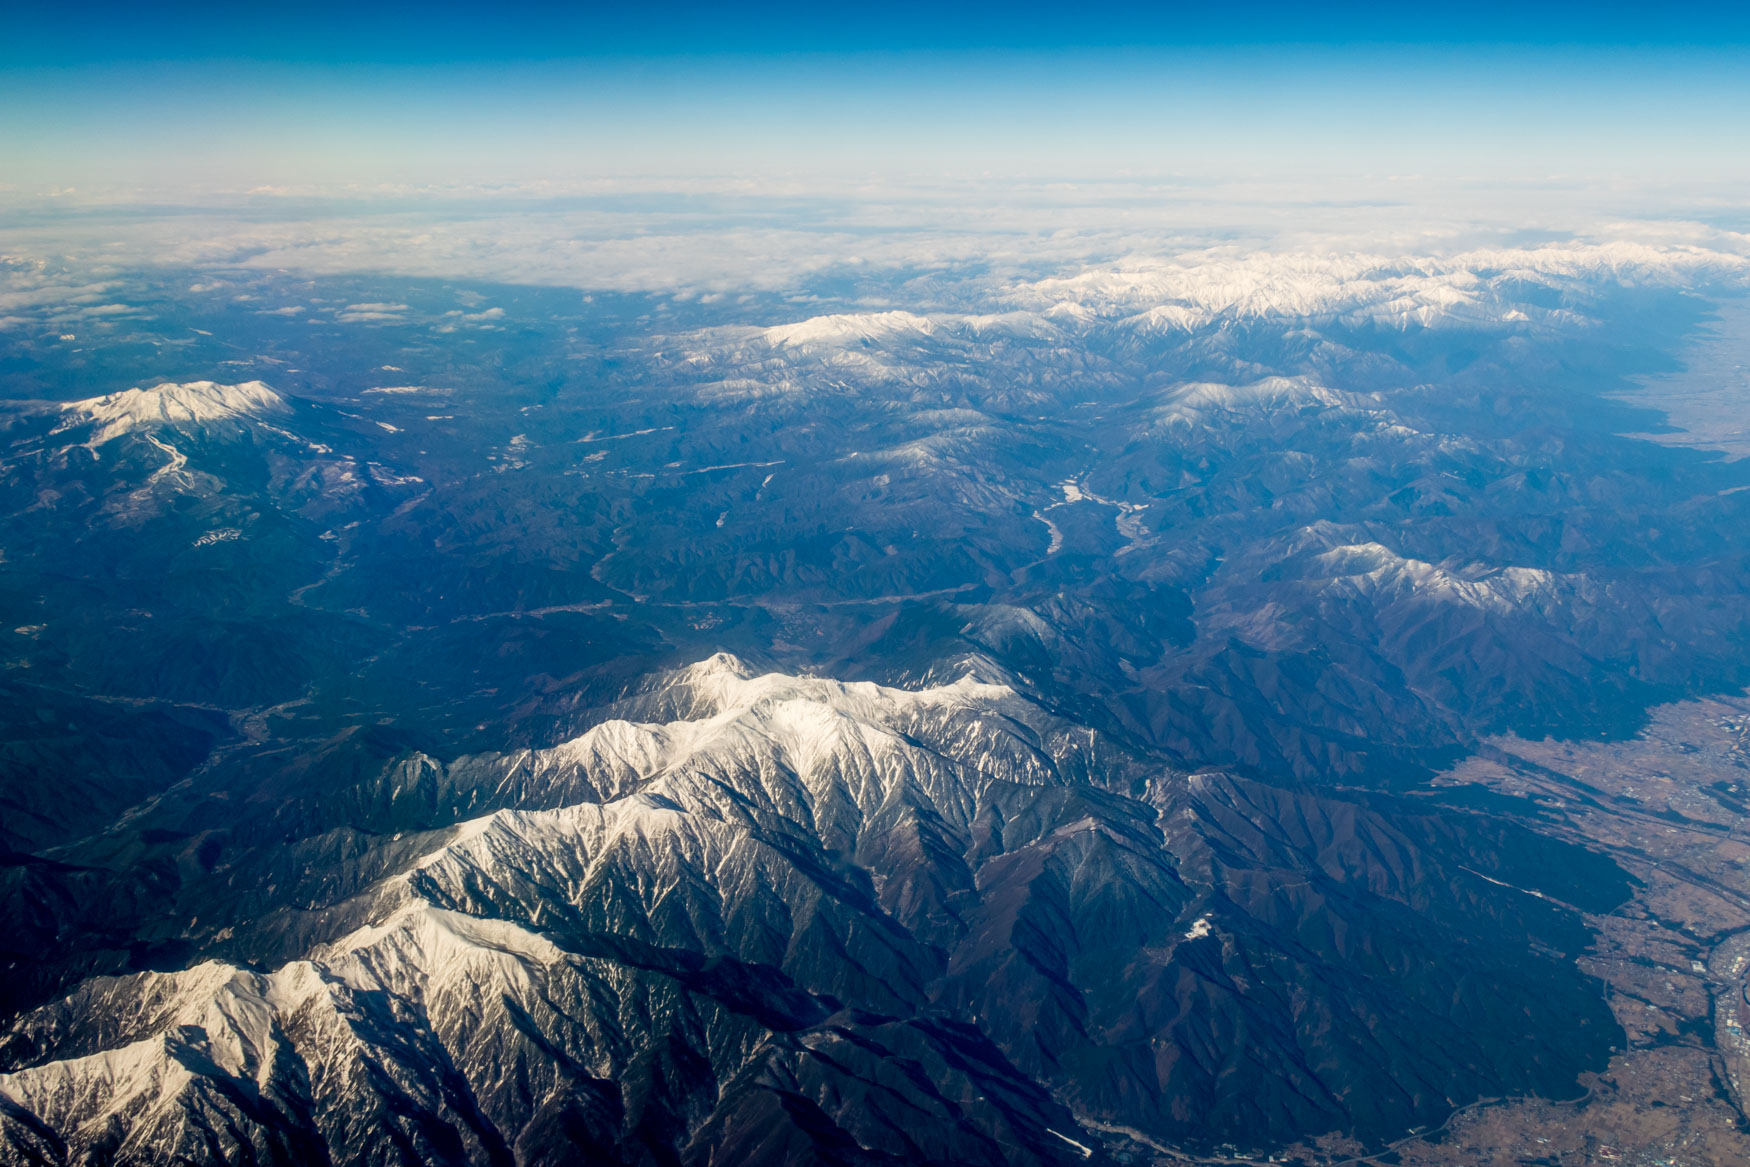 Flying Over the Japanese Alps